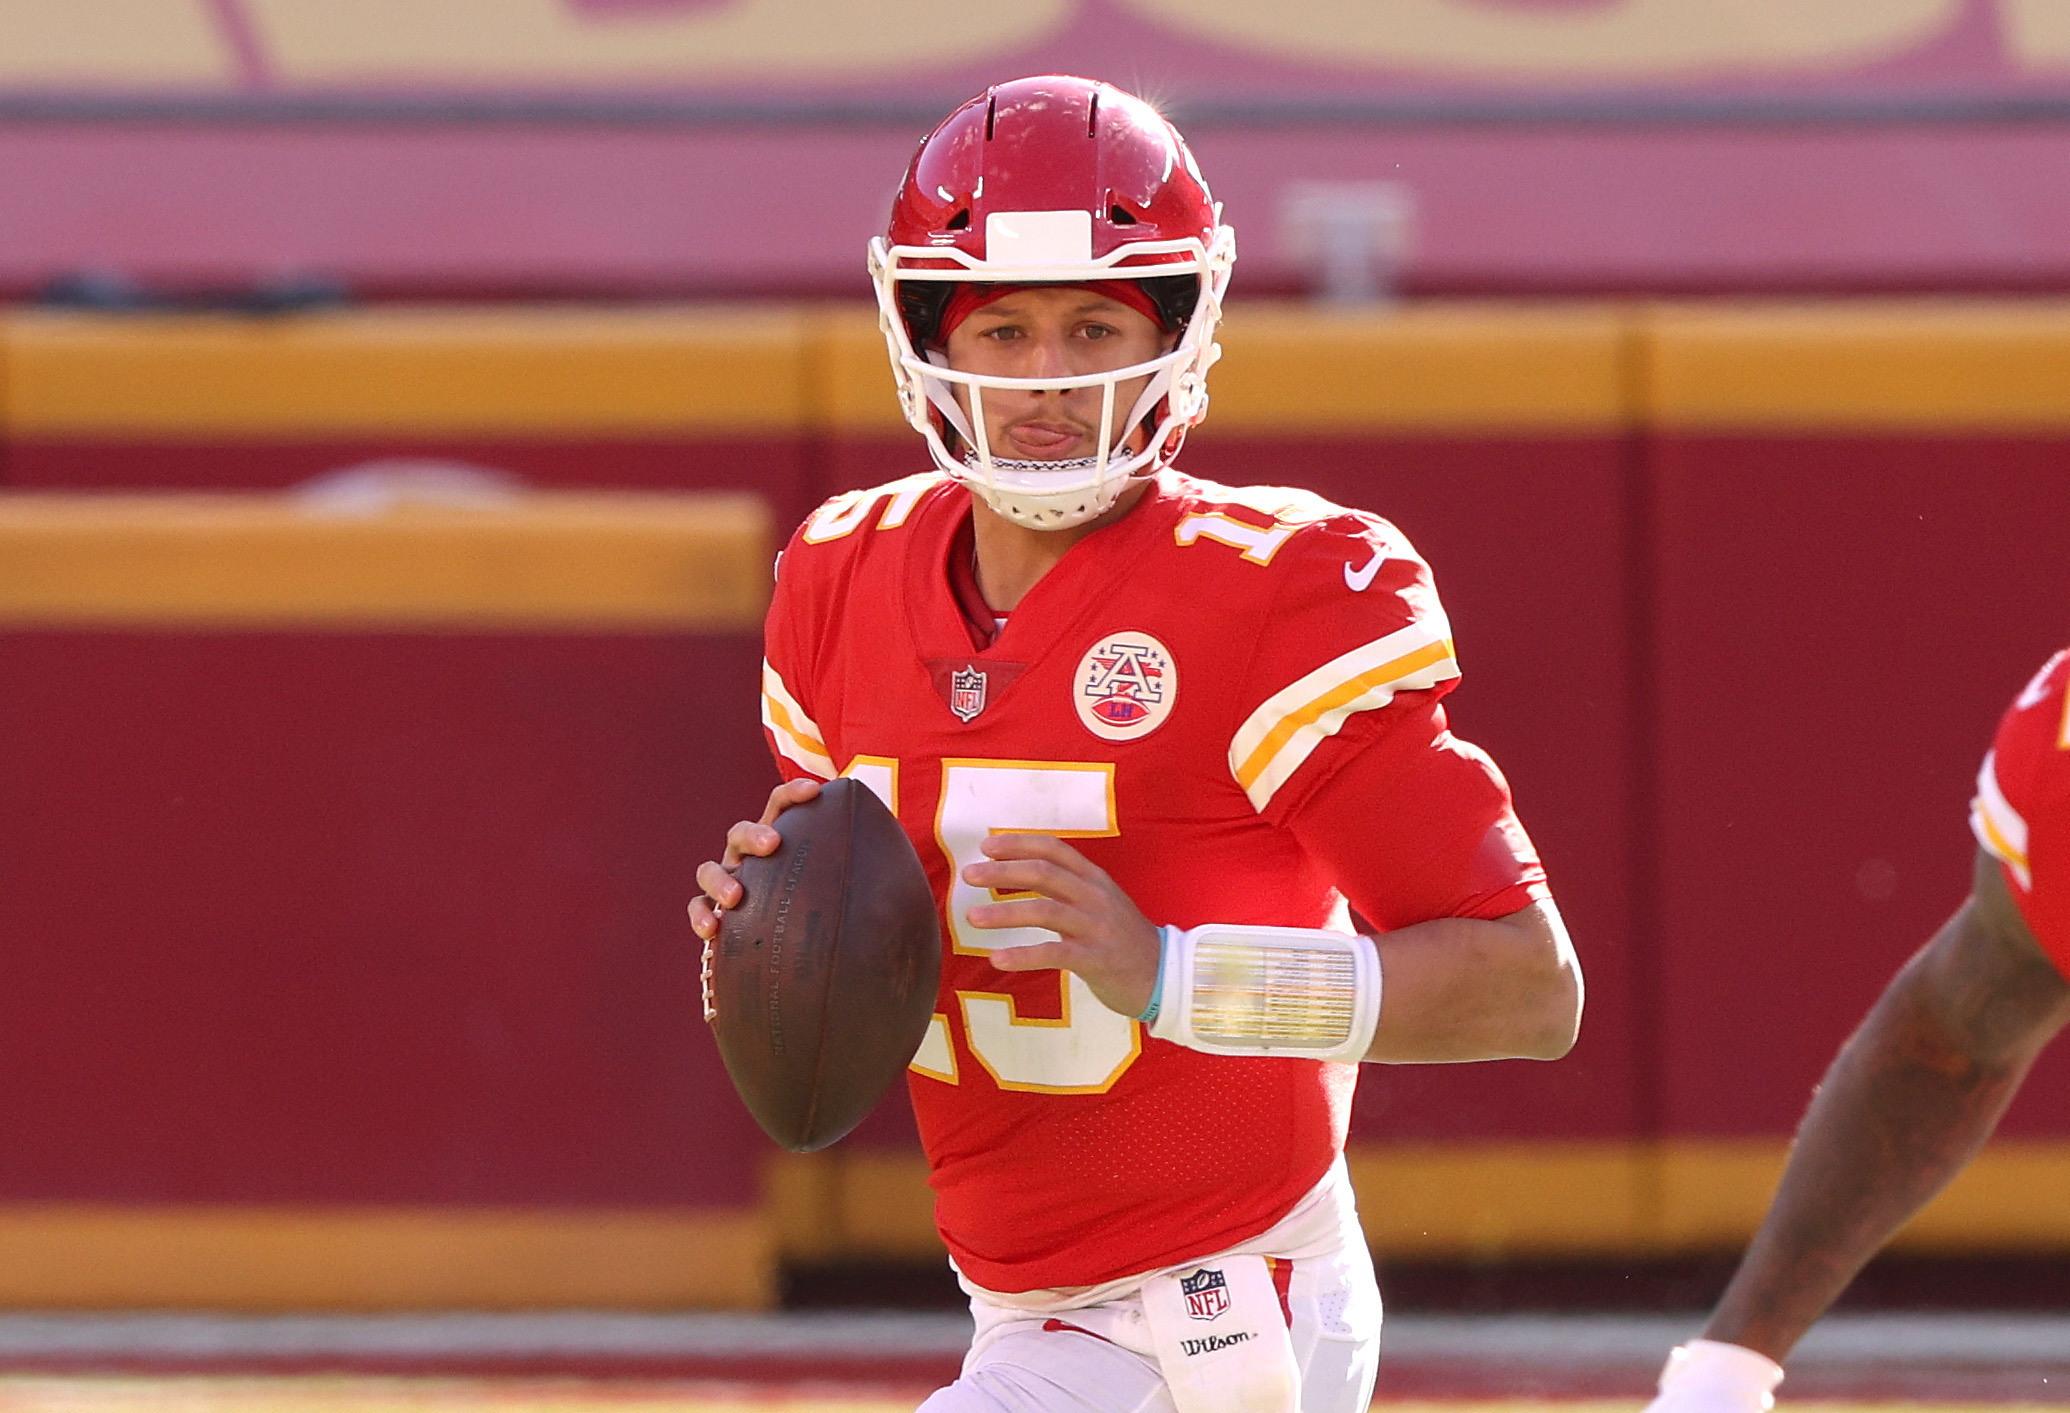 Patrick Mahomes is always looking for ways to sharpen his game, even if that means drawing up plays in the sand in his spare time.